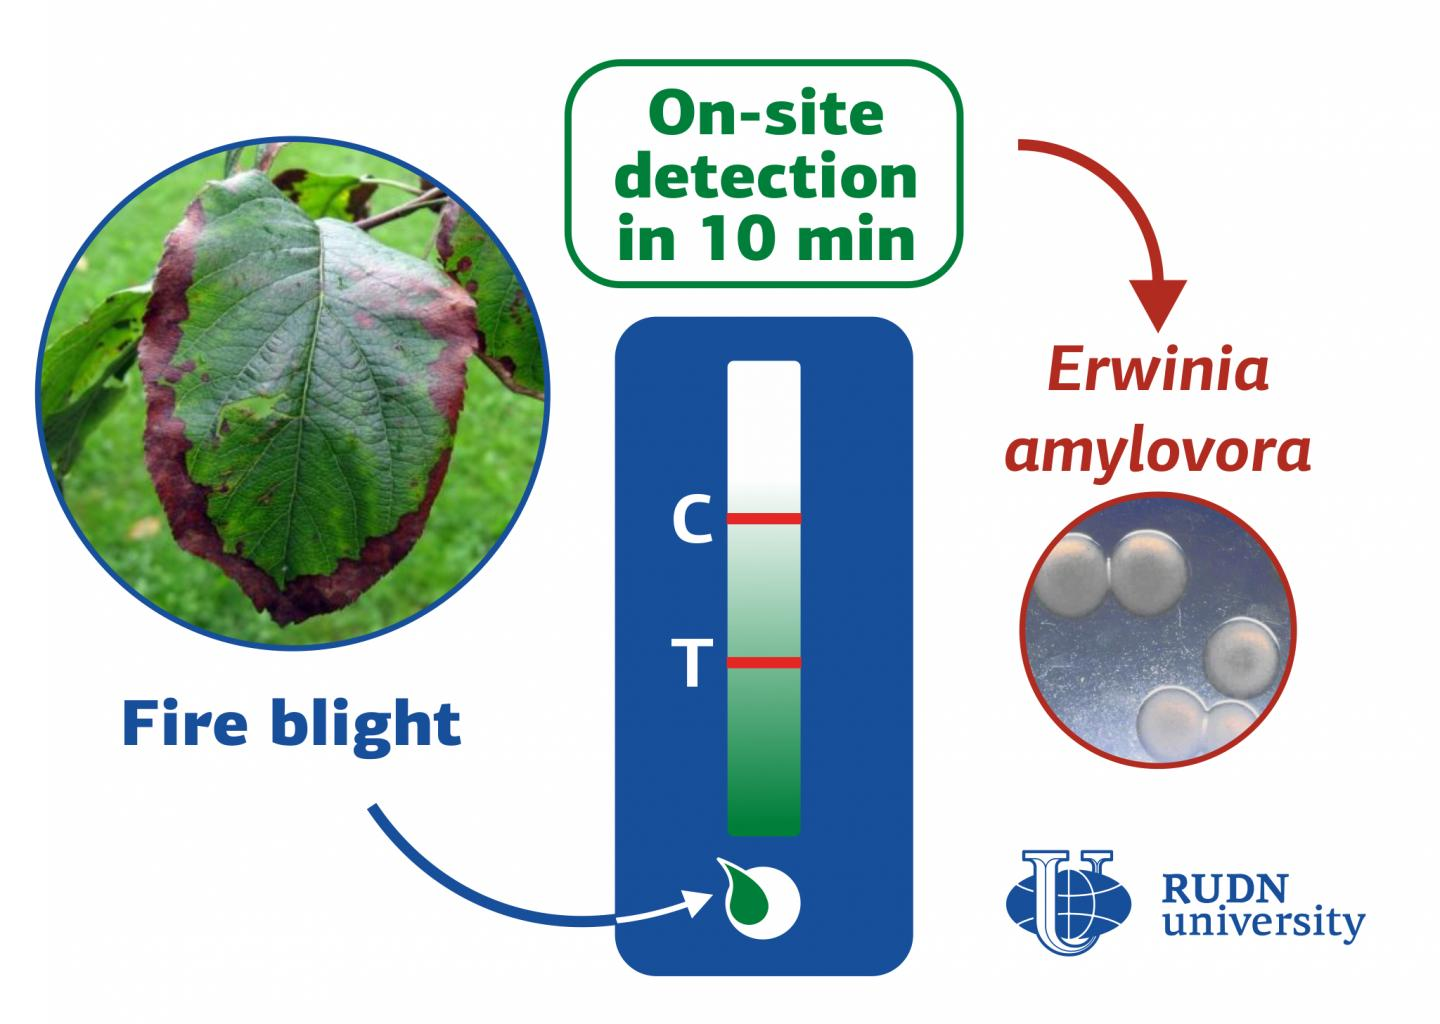 RUDN University biologists develop a rapid test for detecting the fire blight in plants